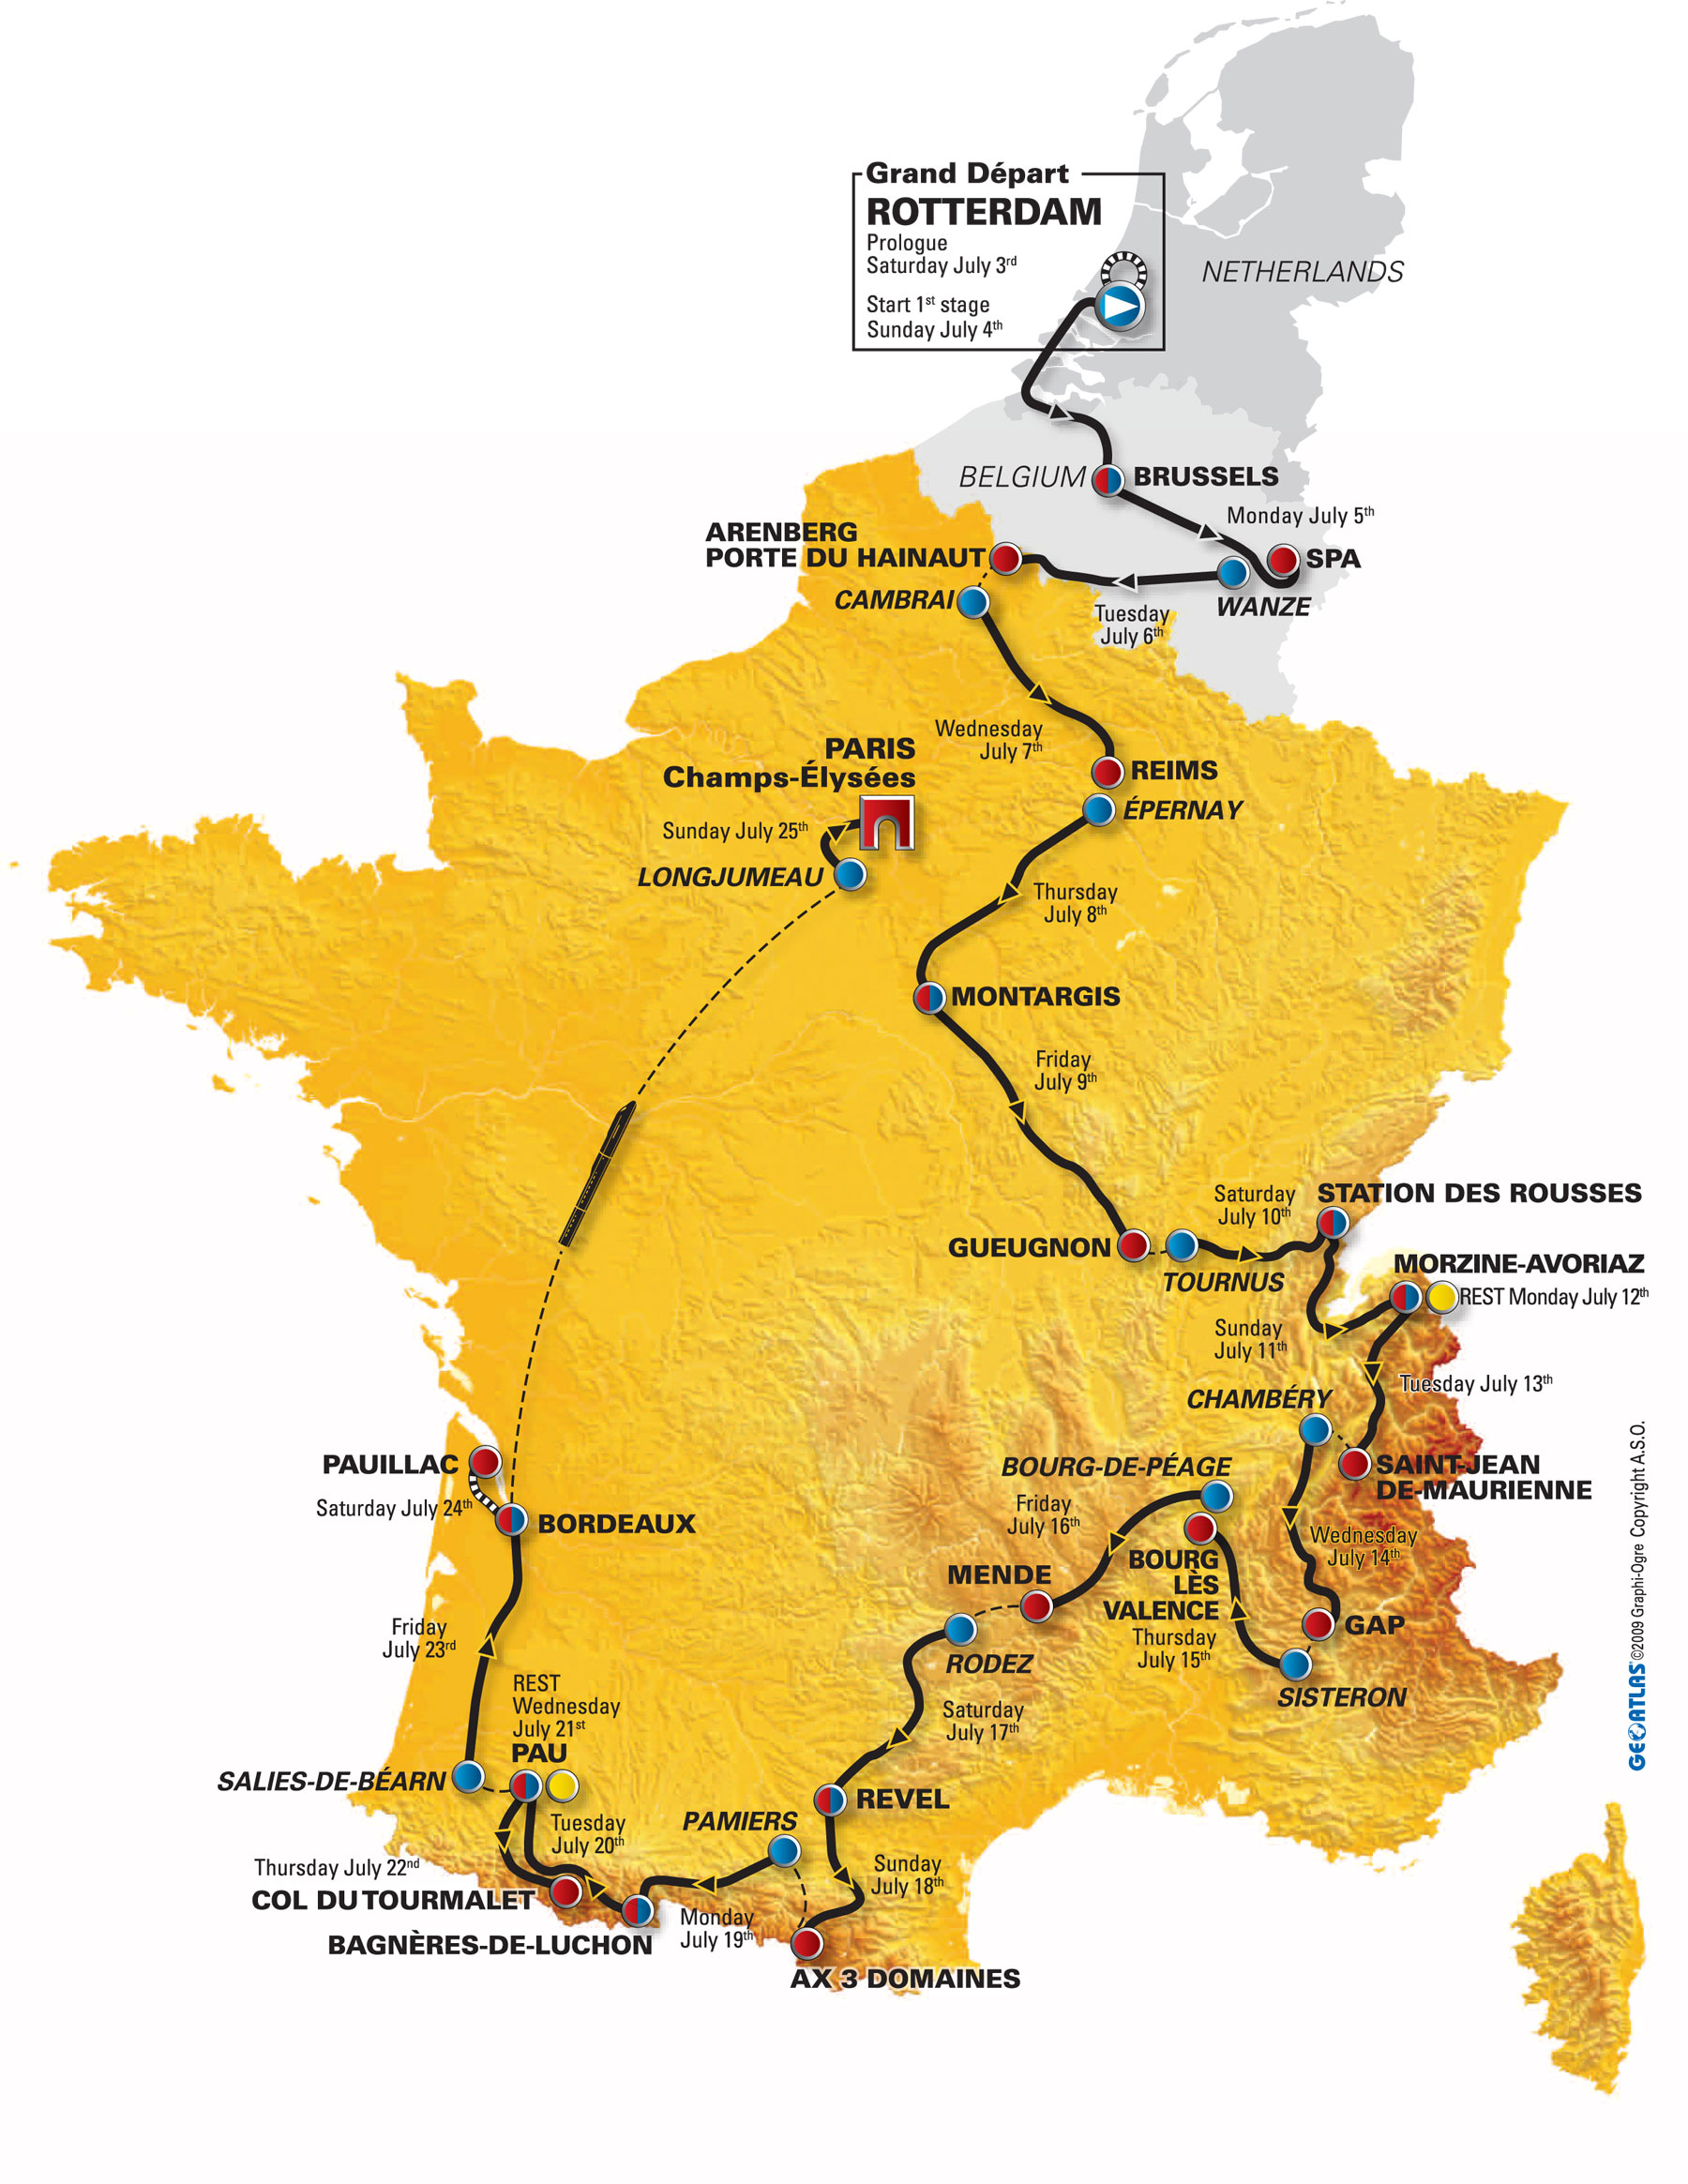 Tour de France 2010 Cycling Weeklys coverage index Cycling Weekly